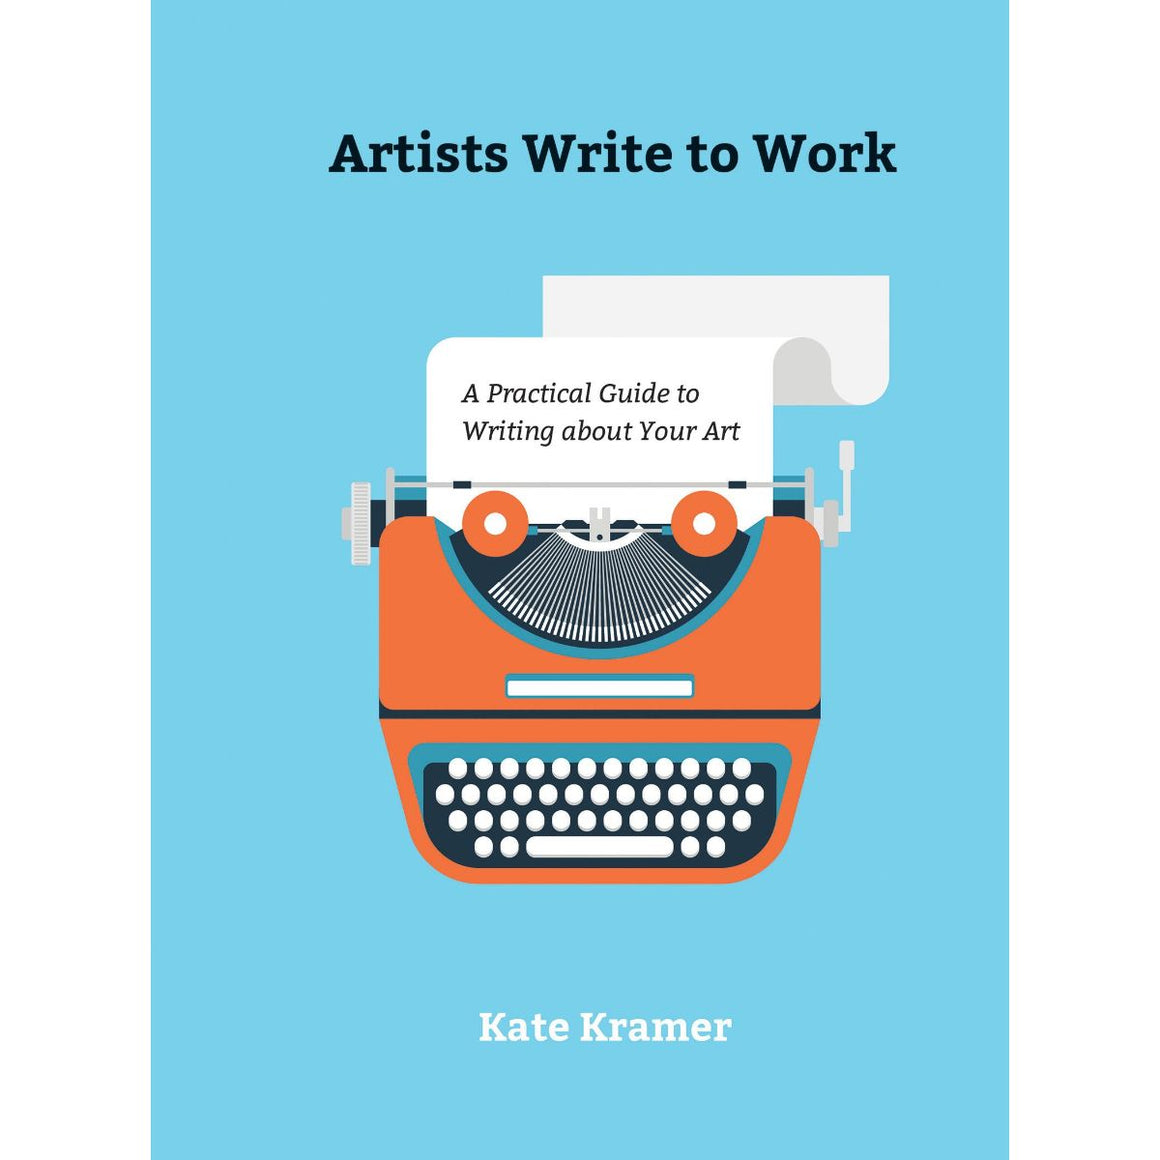 Artists Write to Work: A Practical Guide to Writing About Your Art | Author: Kate Kramer